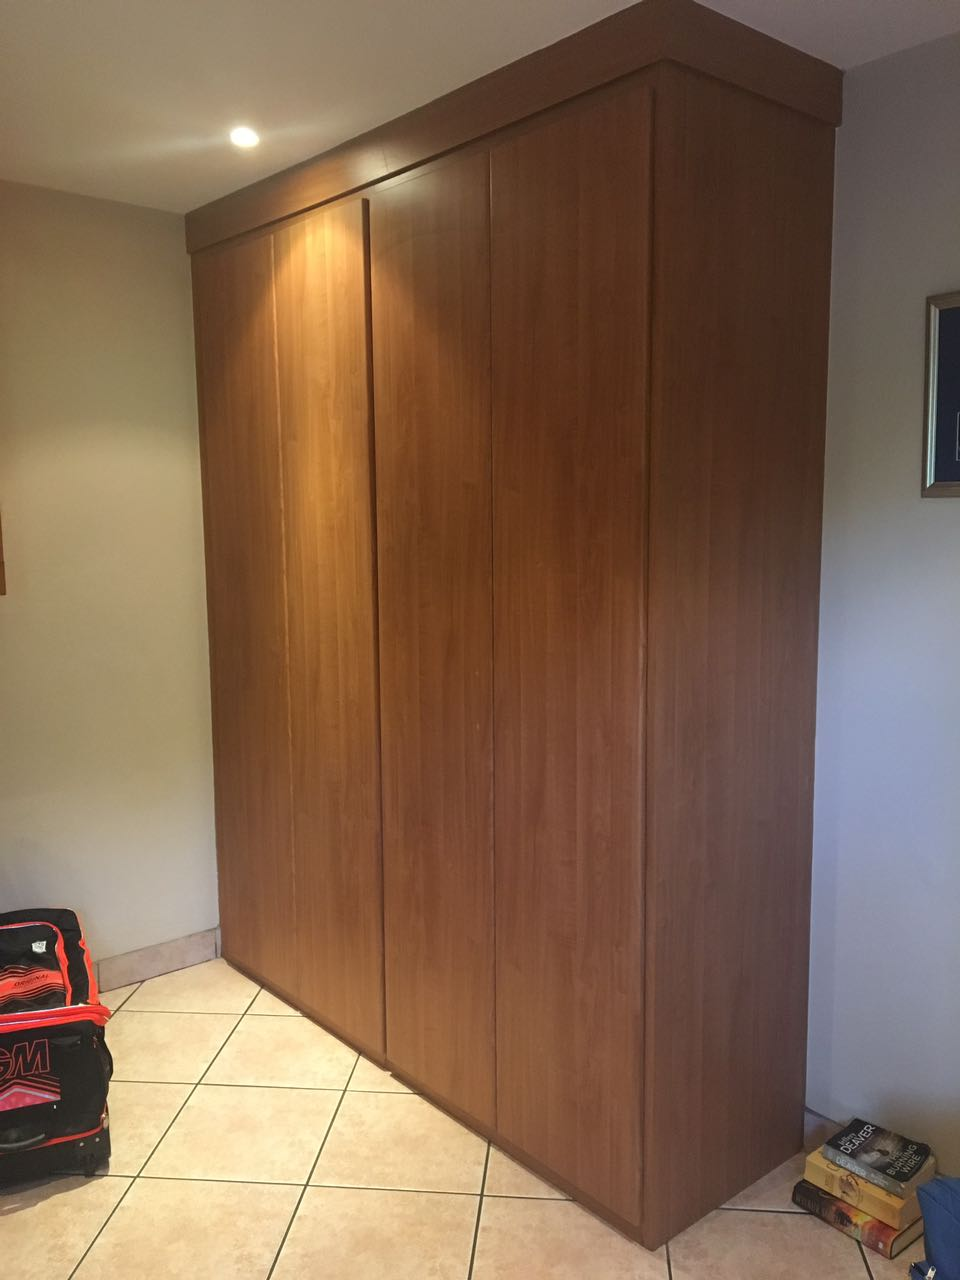 Built in Cupboard and wall unit